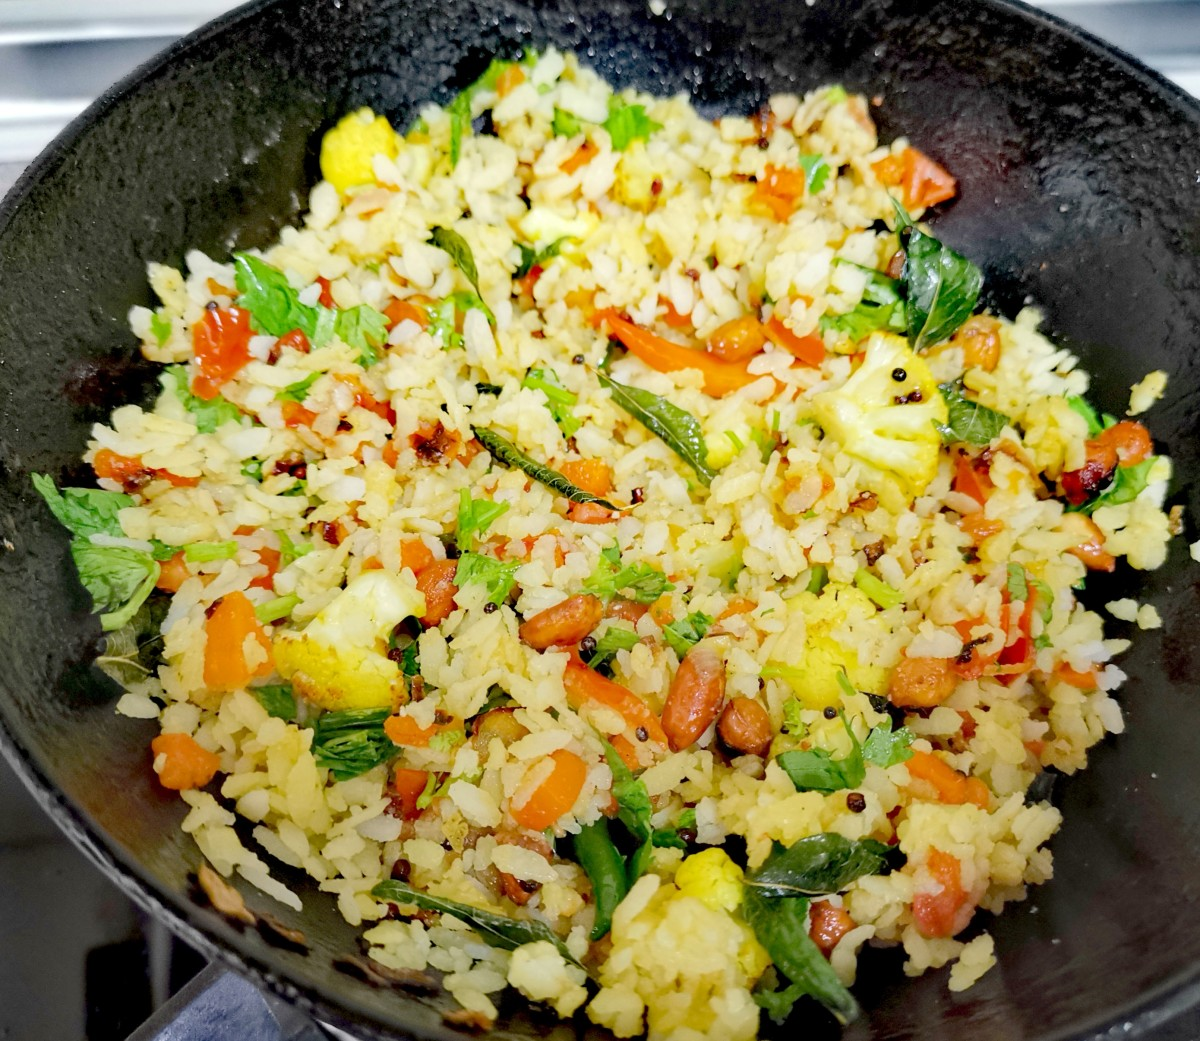 Add washed poha and peanuts. Stir well over medium heat.